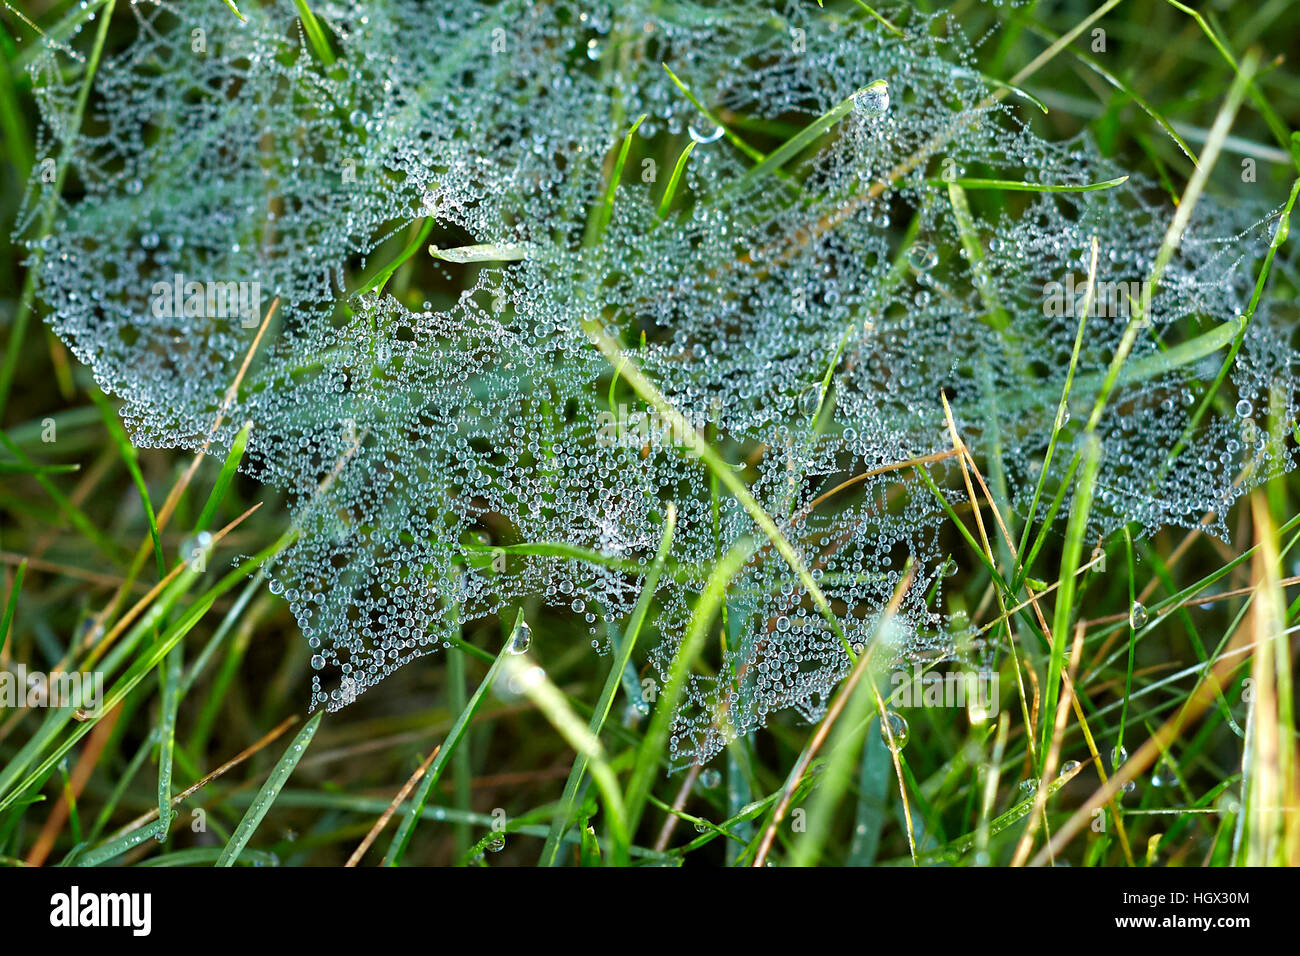 Cobweb in grass covered in morning dew - Stock Image